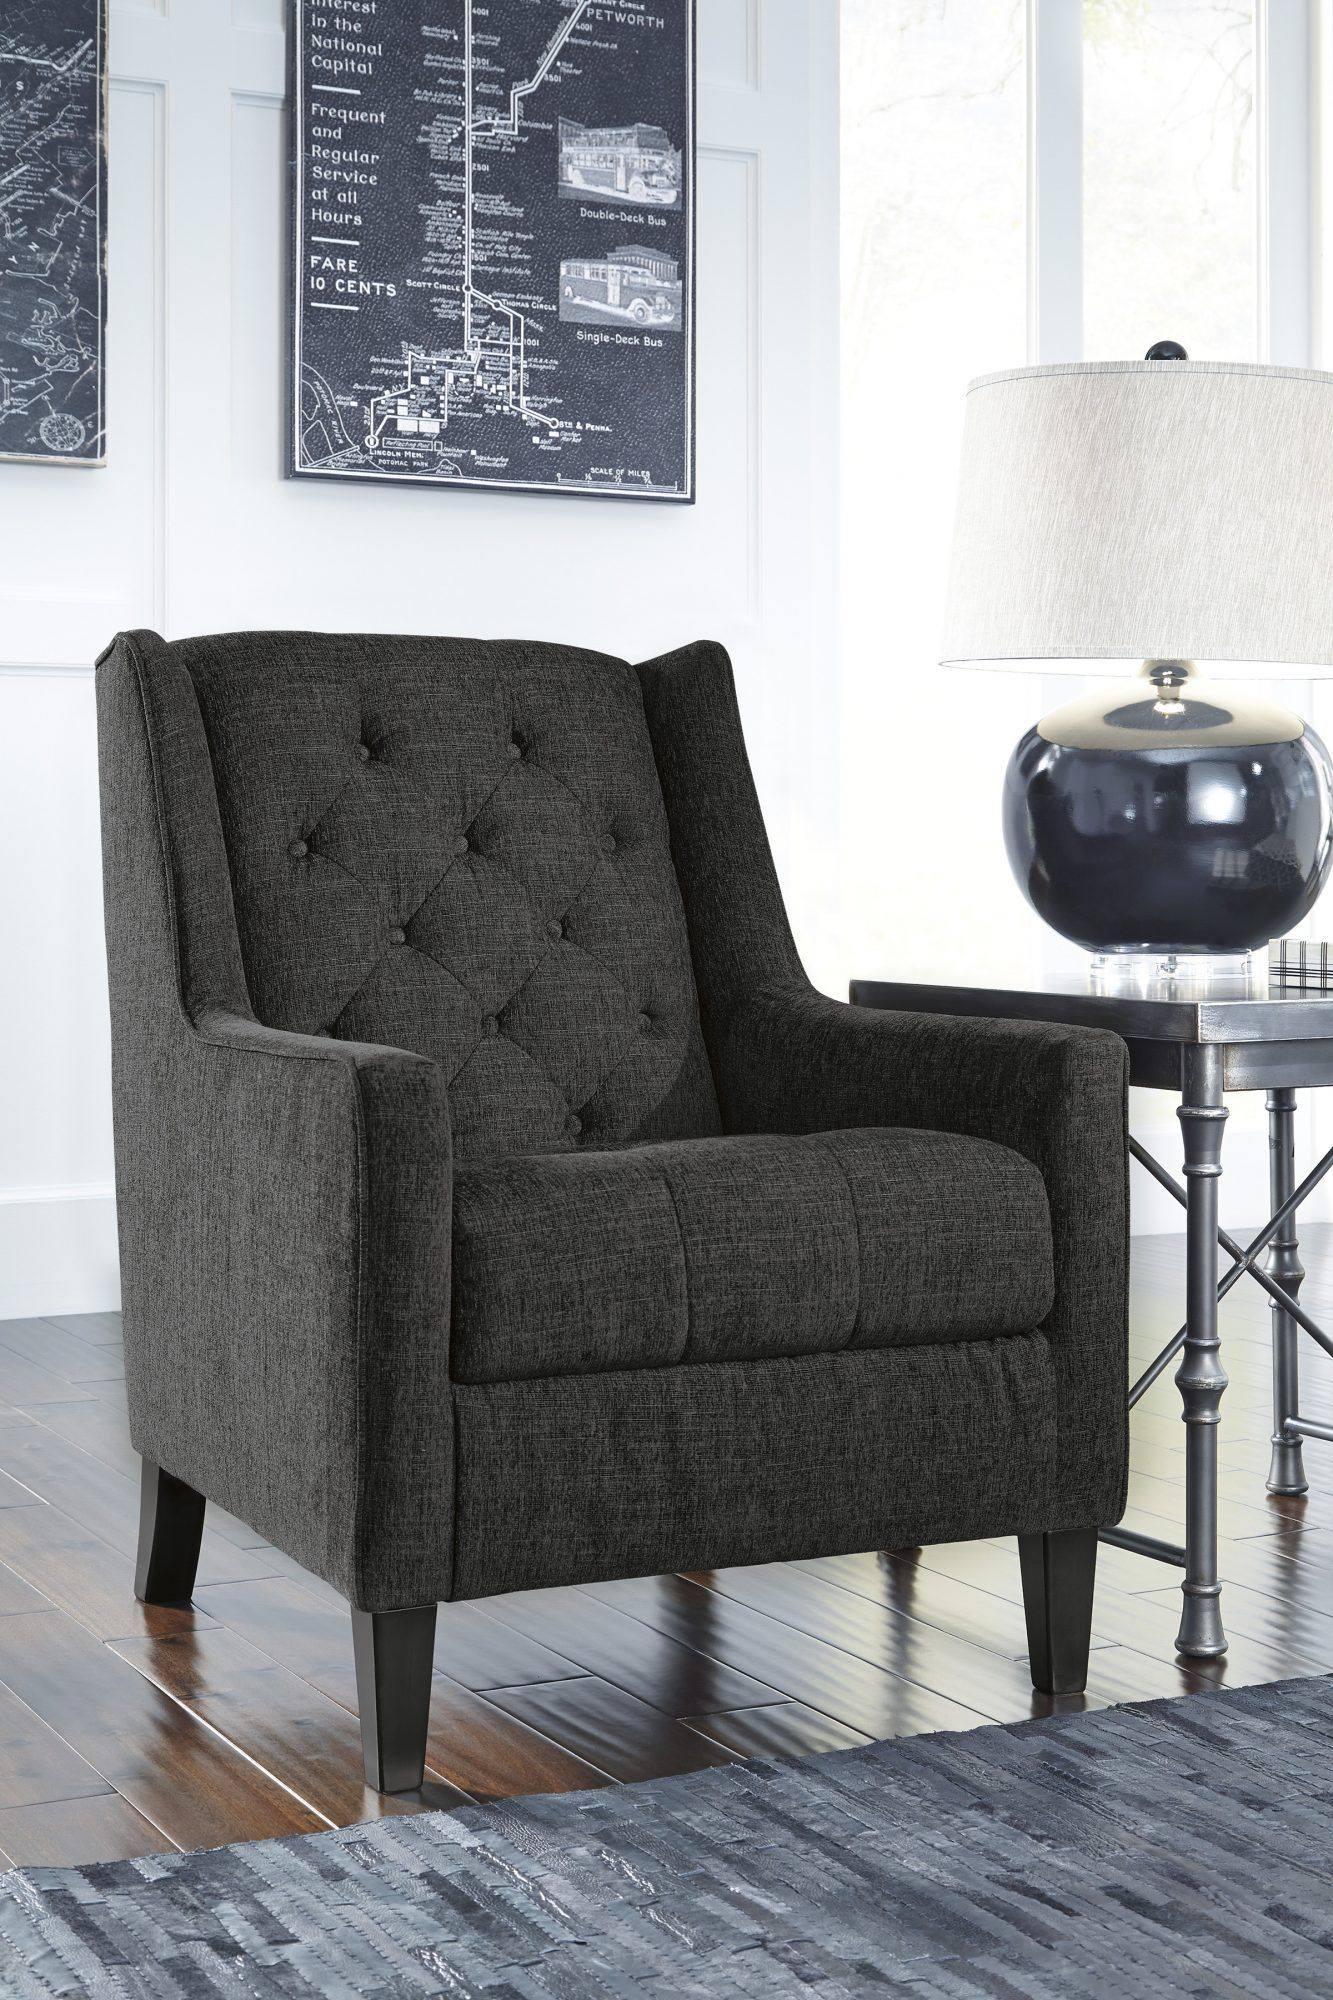 Best Ardenboro Accents Charcoal Accent Chair For The Home 400 x 300